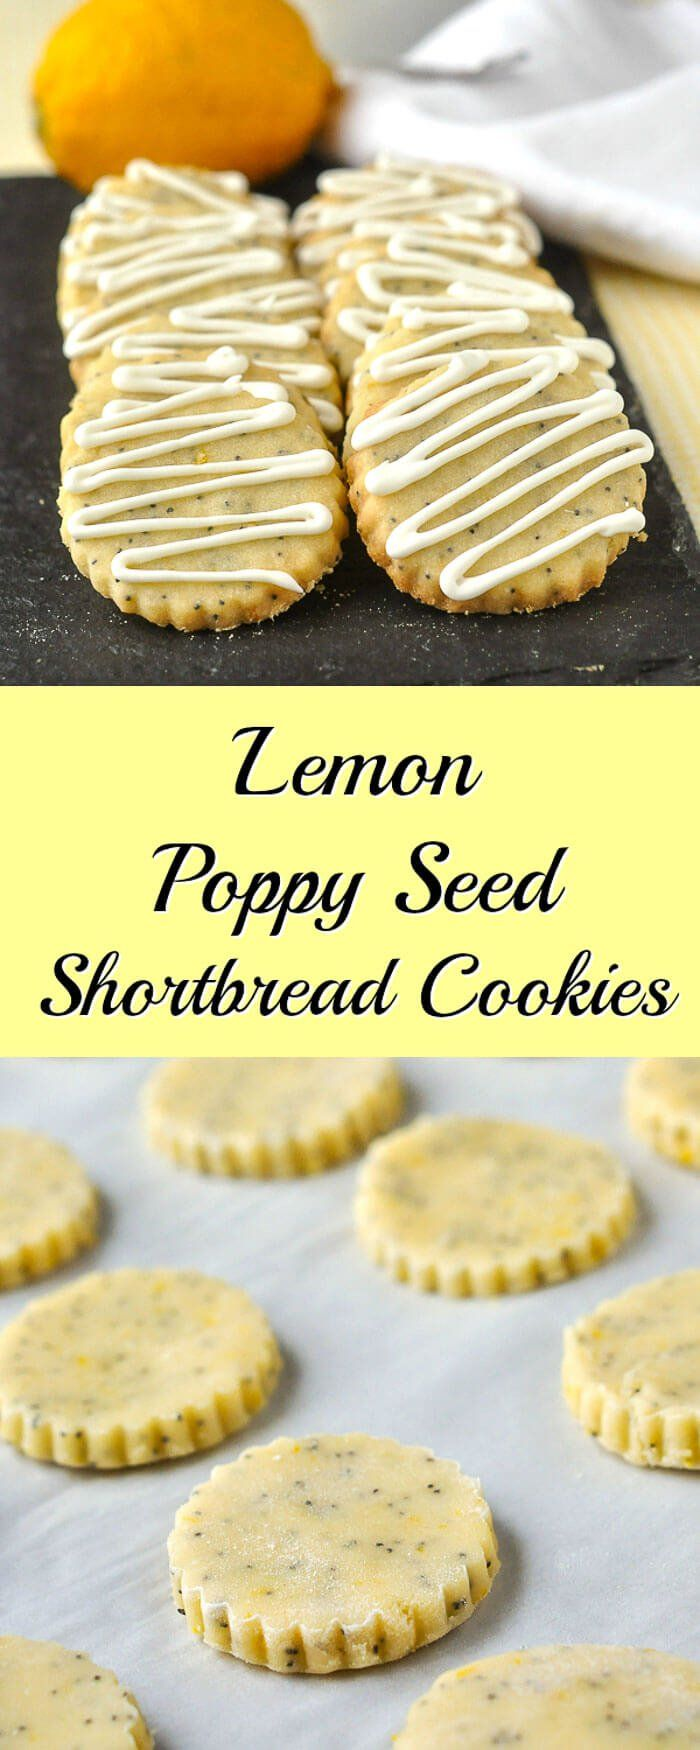 Lemon Poppy Seed Shortbread Cookies - ideal for afternoon tea! Buttery sweet shortbread cookies flavoured with lemon zest and poppy seeds.